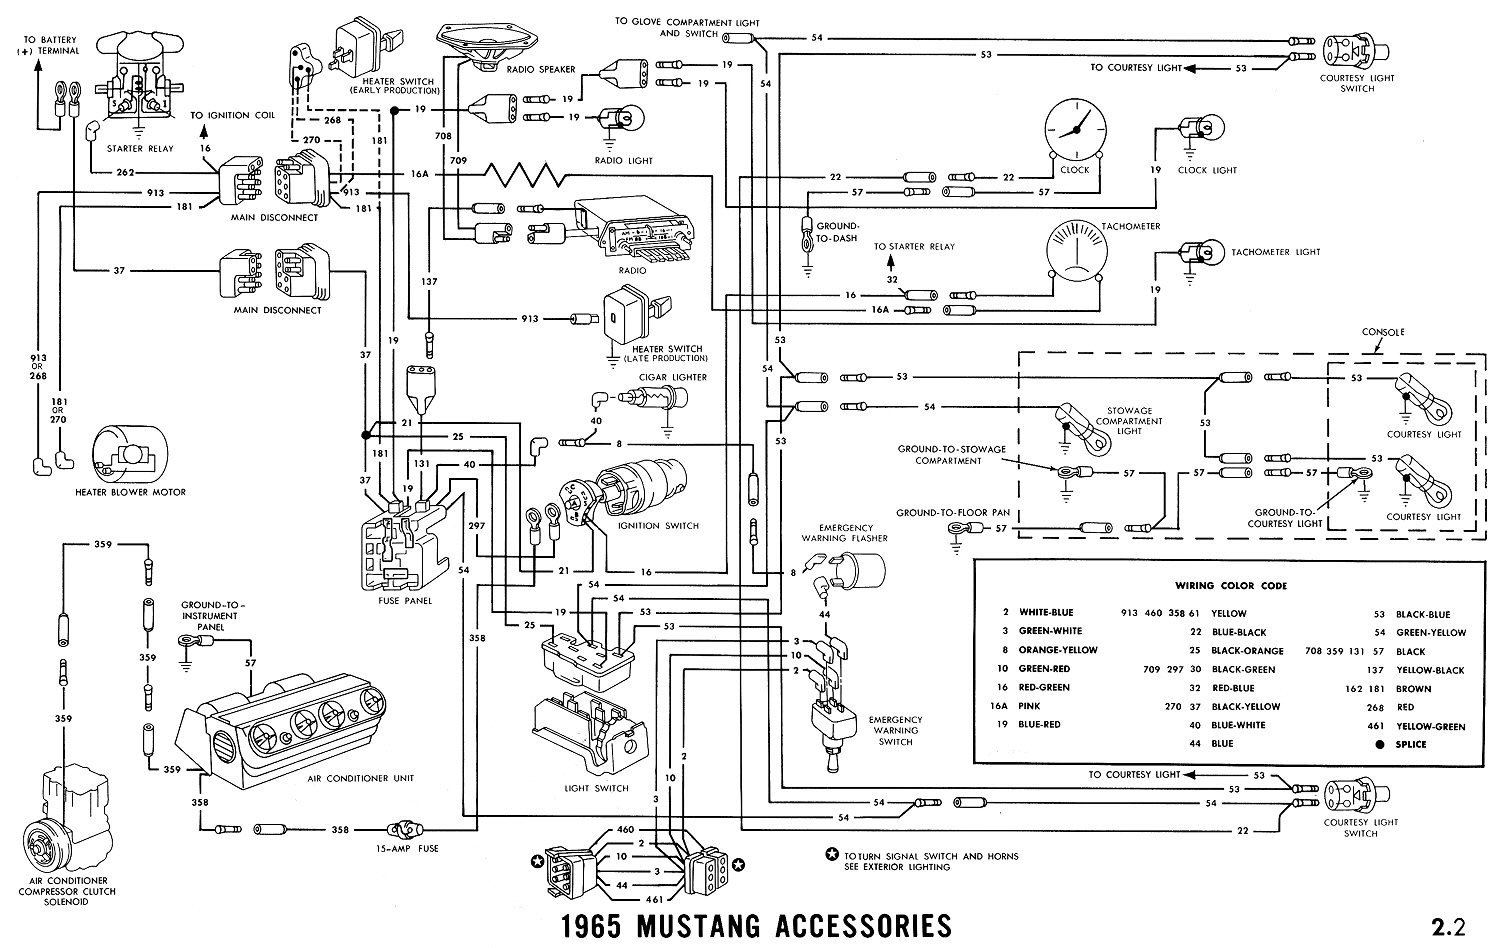 1965i 1965 mustang wiring diagrams average joe restoration  at bayanpartner.co